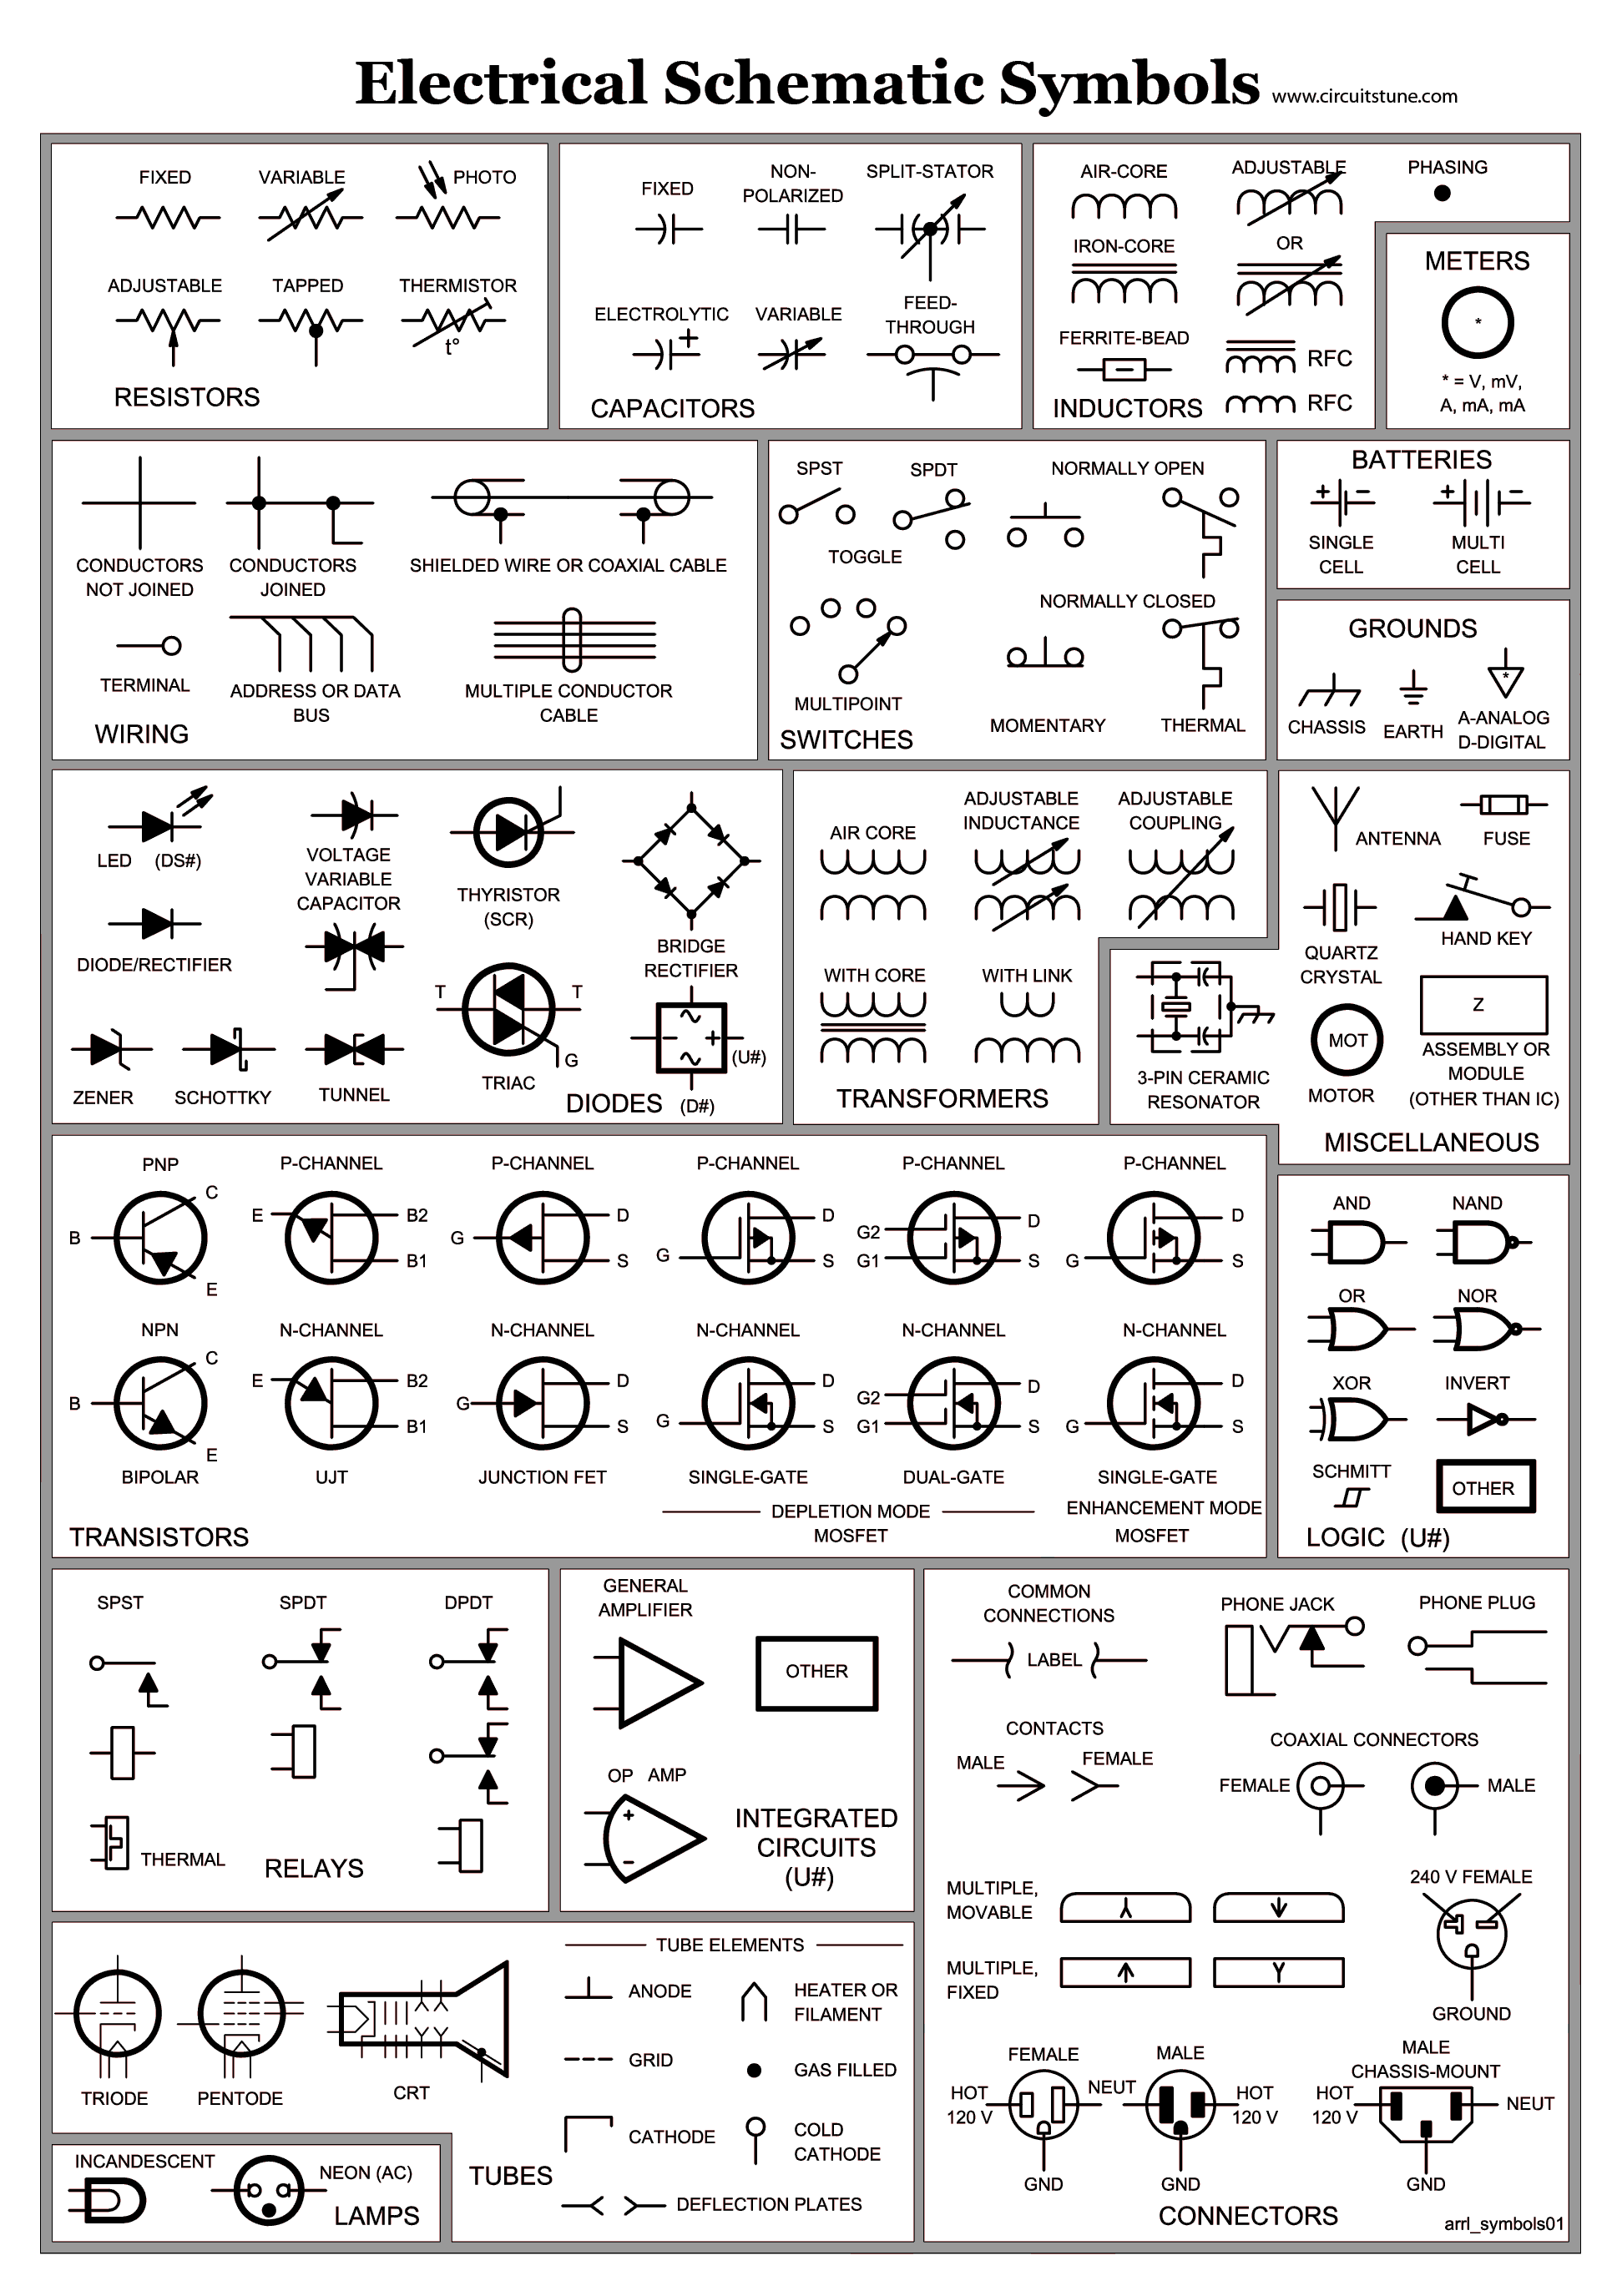 a65d176364692d2ebe913b58a654cfc3 electrical schematic symbols wire diagram symbols automotive wiring diagram symbols at suagrazia.org